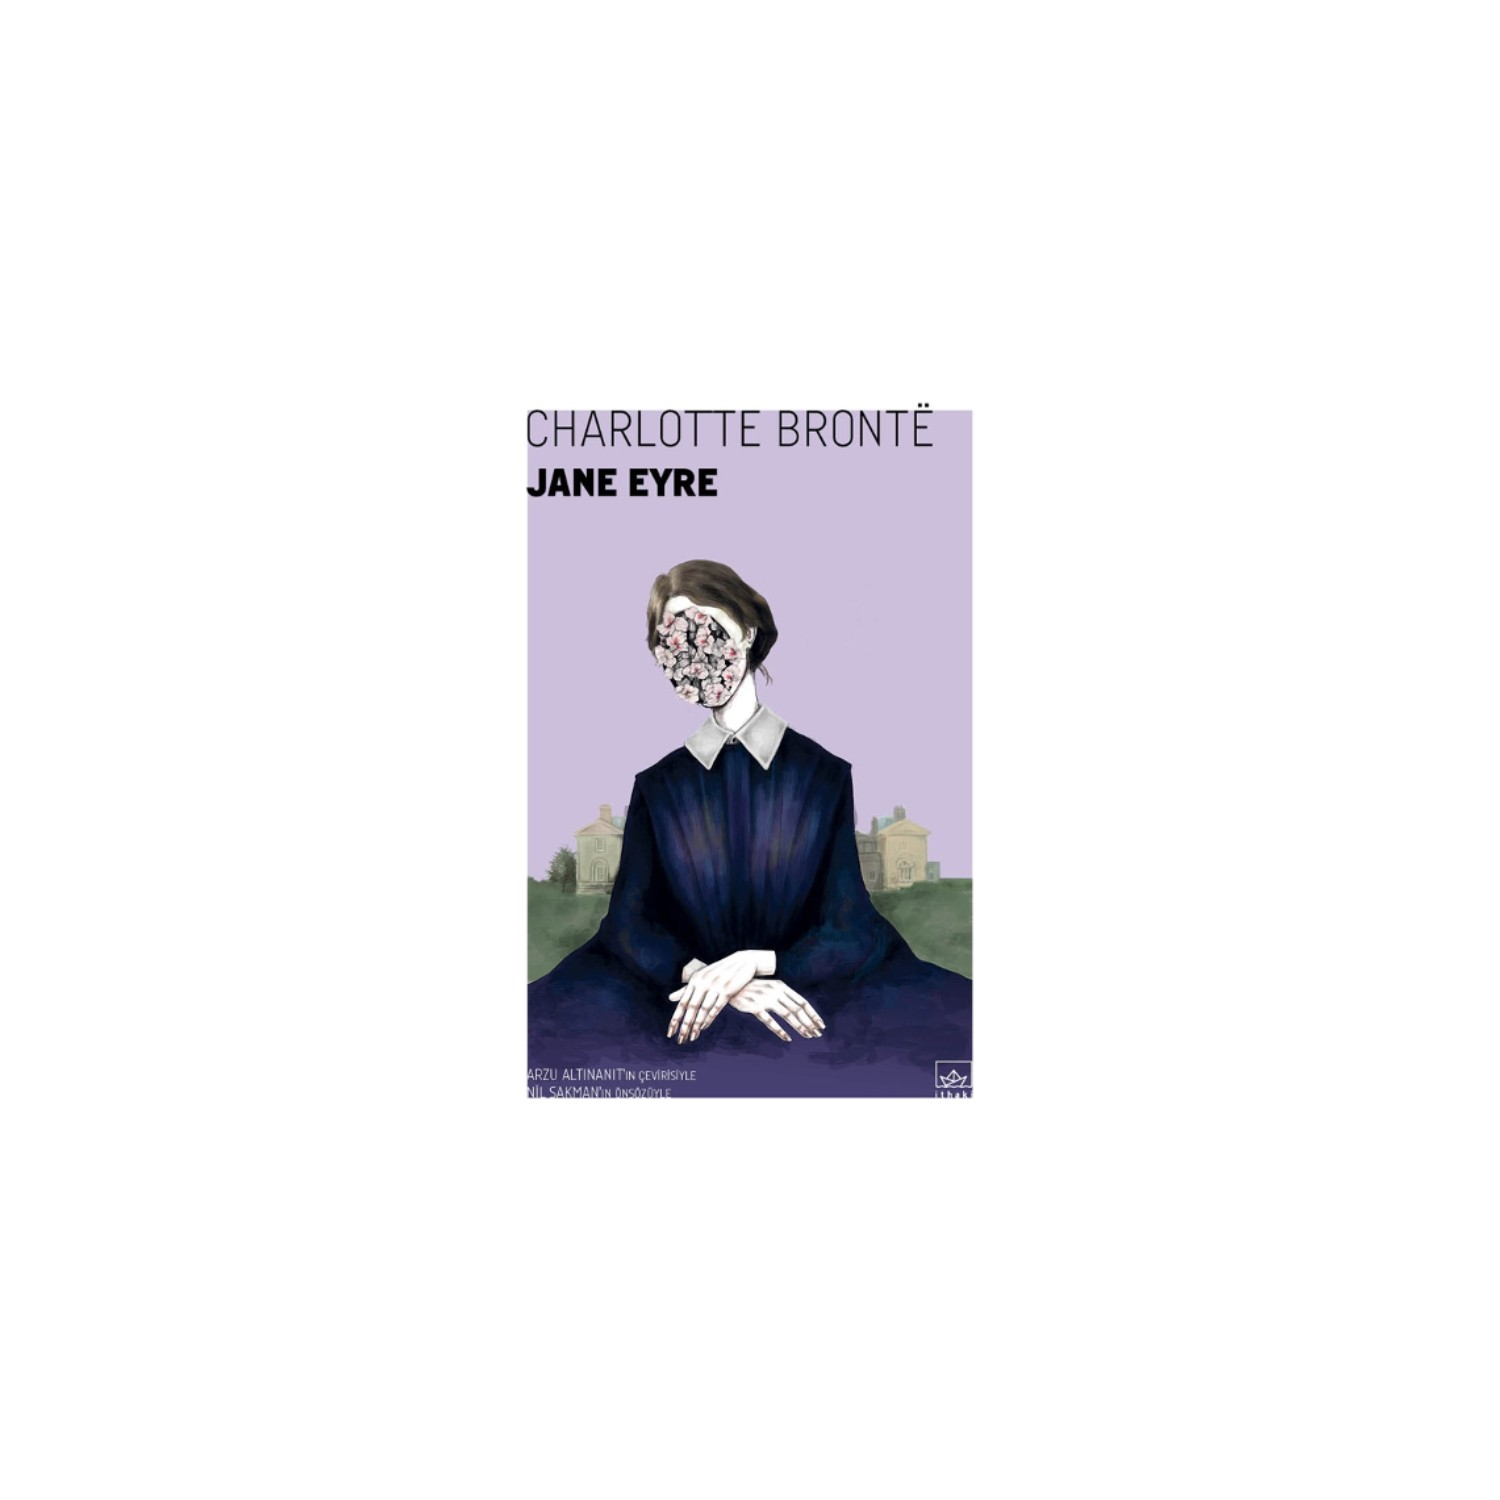 a chapter analysis of charlotte brontes jane eyre Charlotte bronte's jane eyre has several important themes one of the most important themes may be the injustice of a rigid class structure because jane is an orphan, her life choices are far.